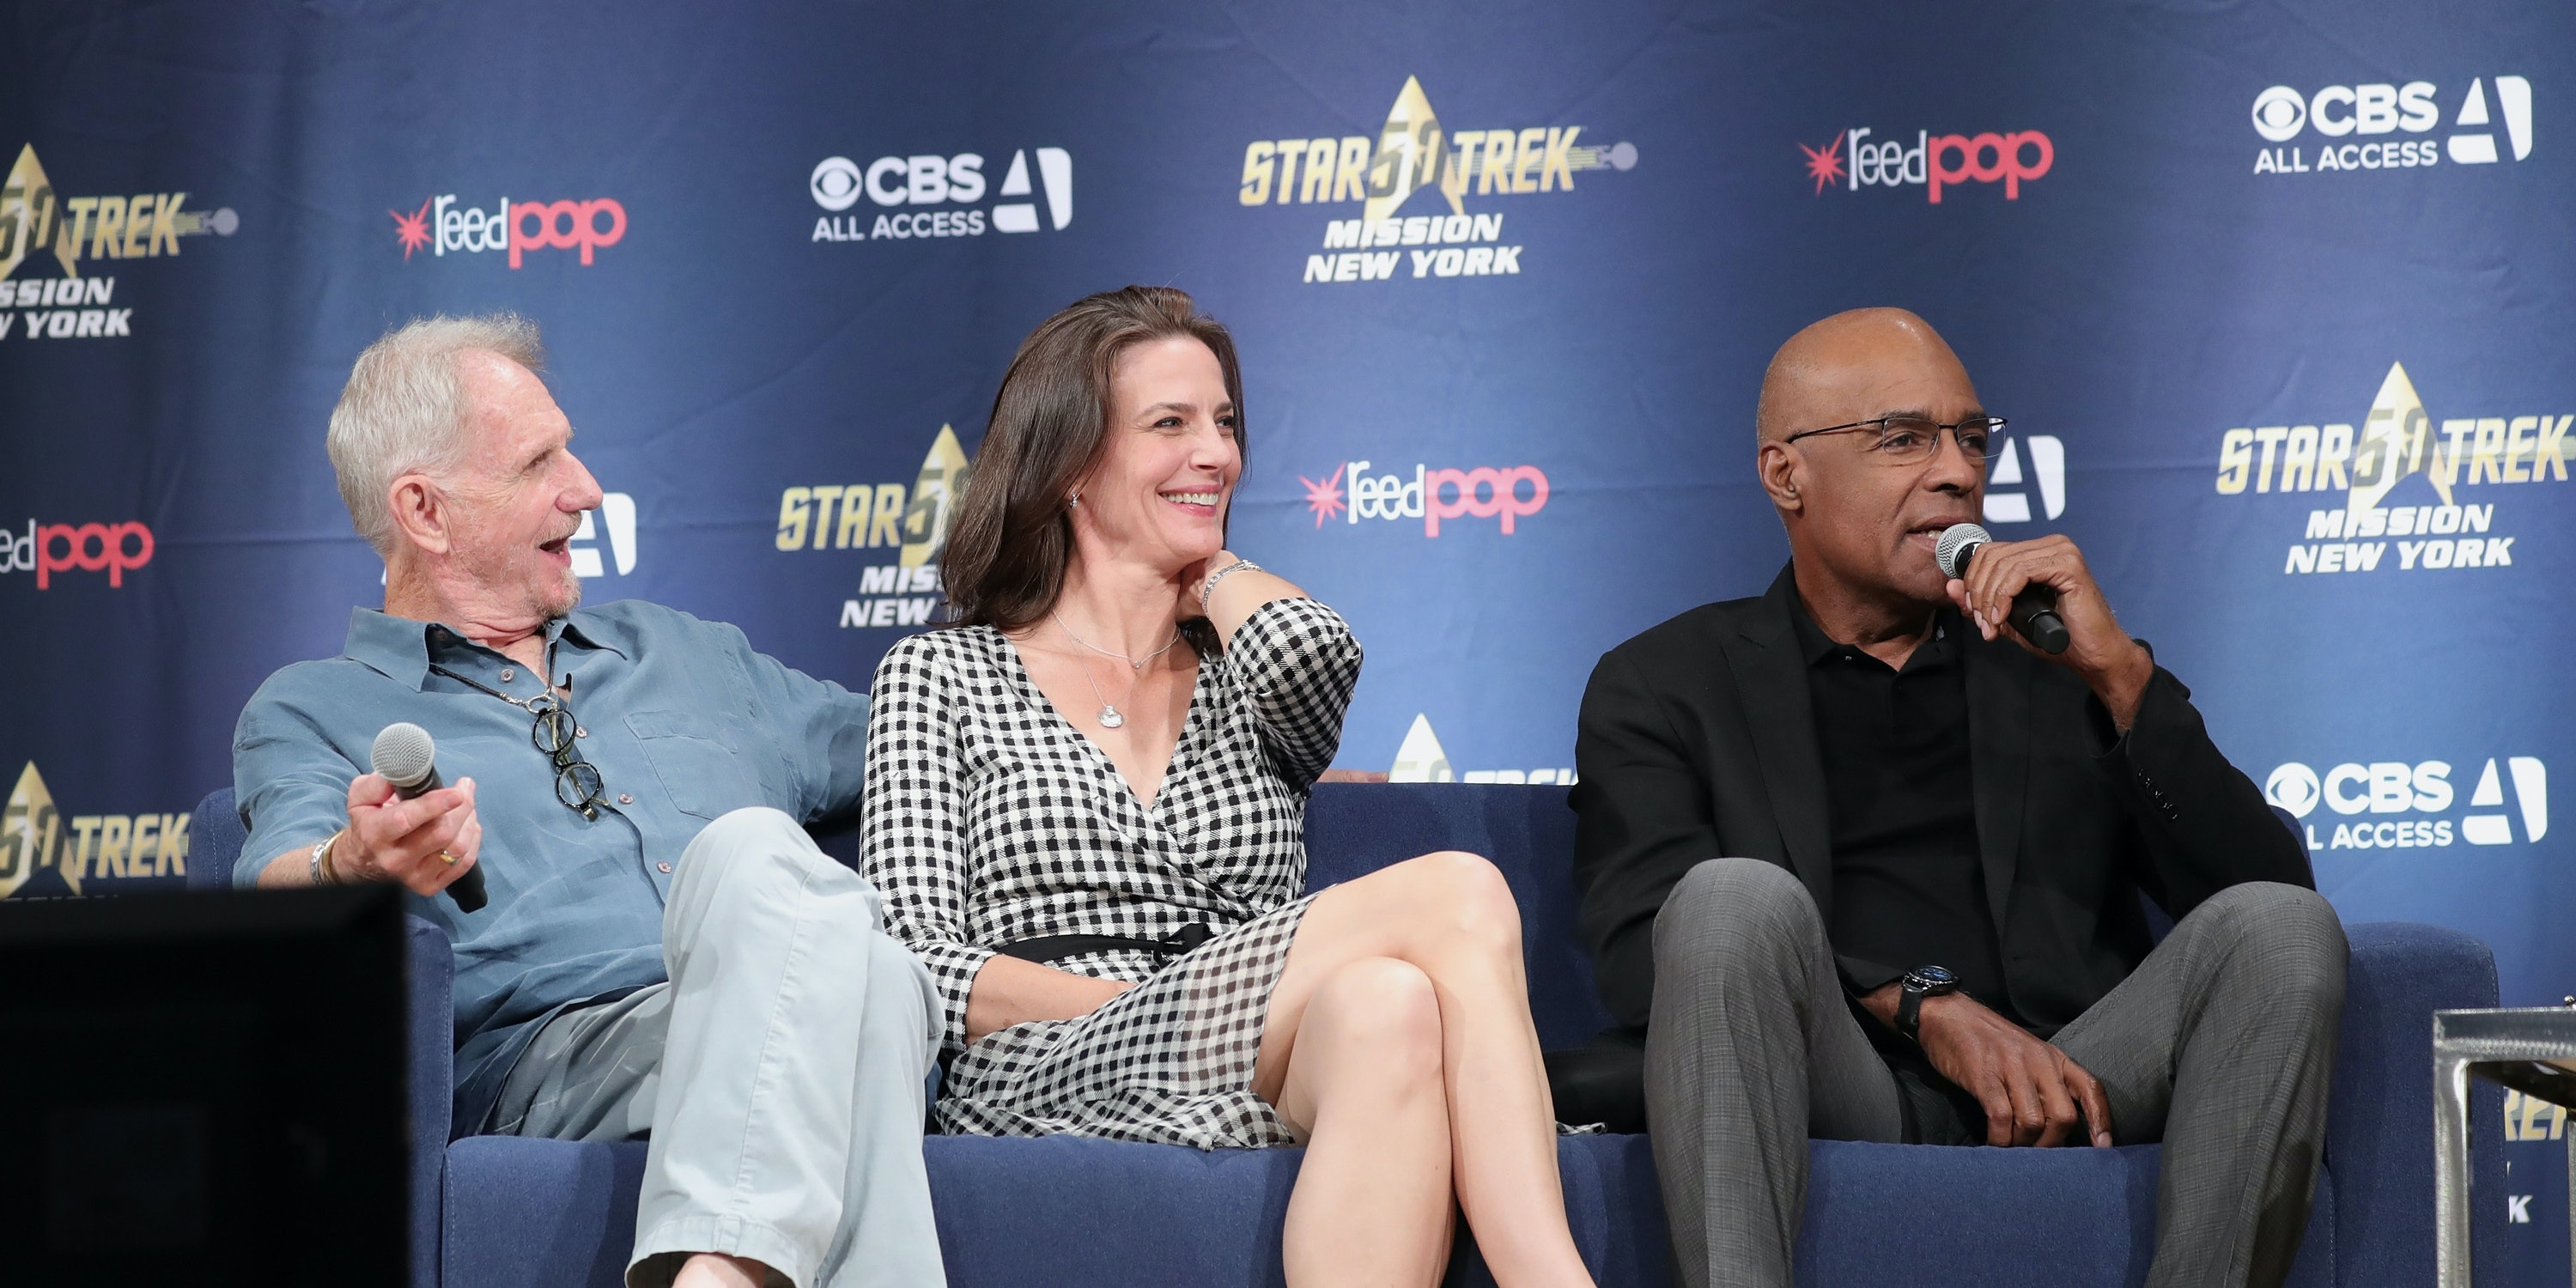 NEW YORK, NY - SEPTEMBER 02:  (L-R) Rene Auberjonois, Terry Farrell and Michael Dorn speak on stage at 'The Star Trek: Deep Space Nine: From The Edge of the Frontier' cast reunion at Javits Center on September 2, 2016 in New York City.  (Photo by Neilson Barnard/Getty Images)